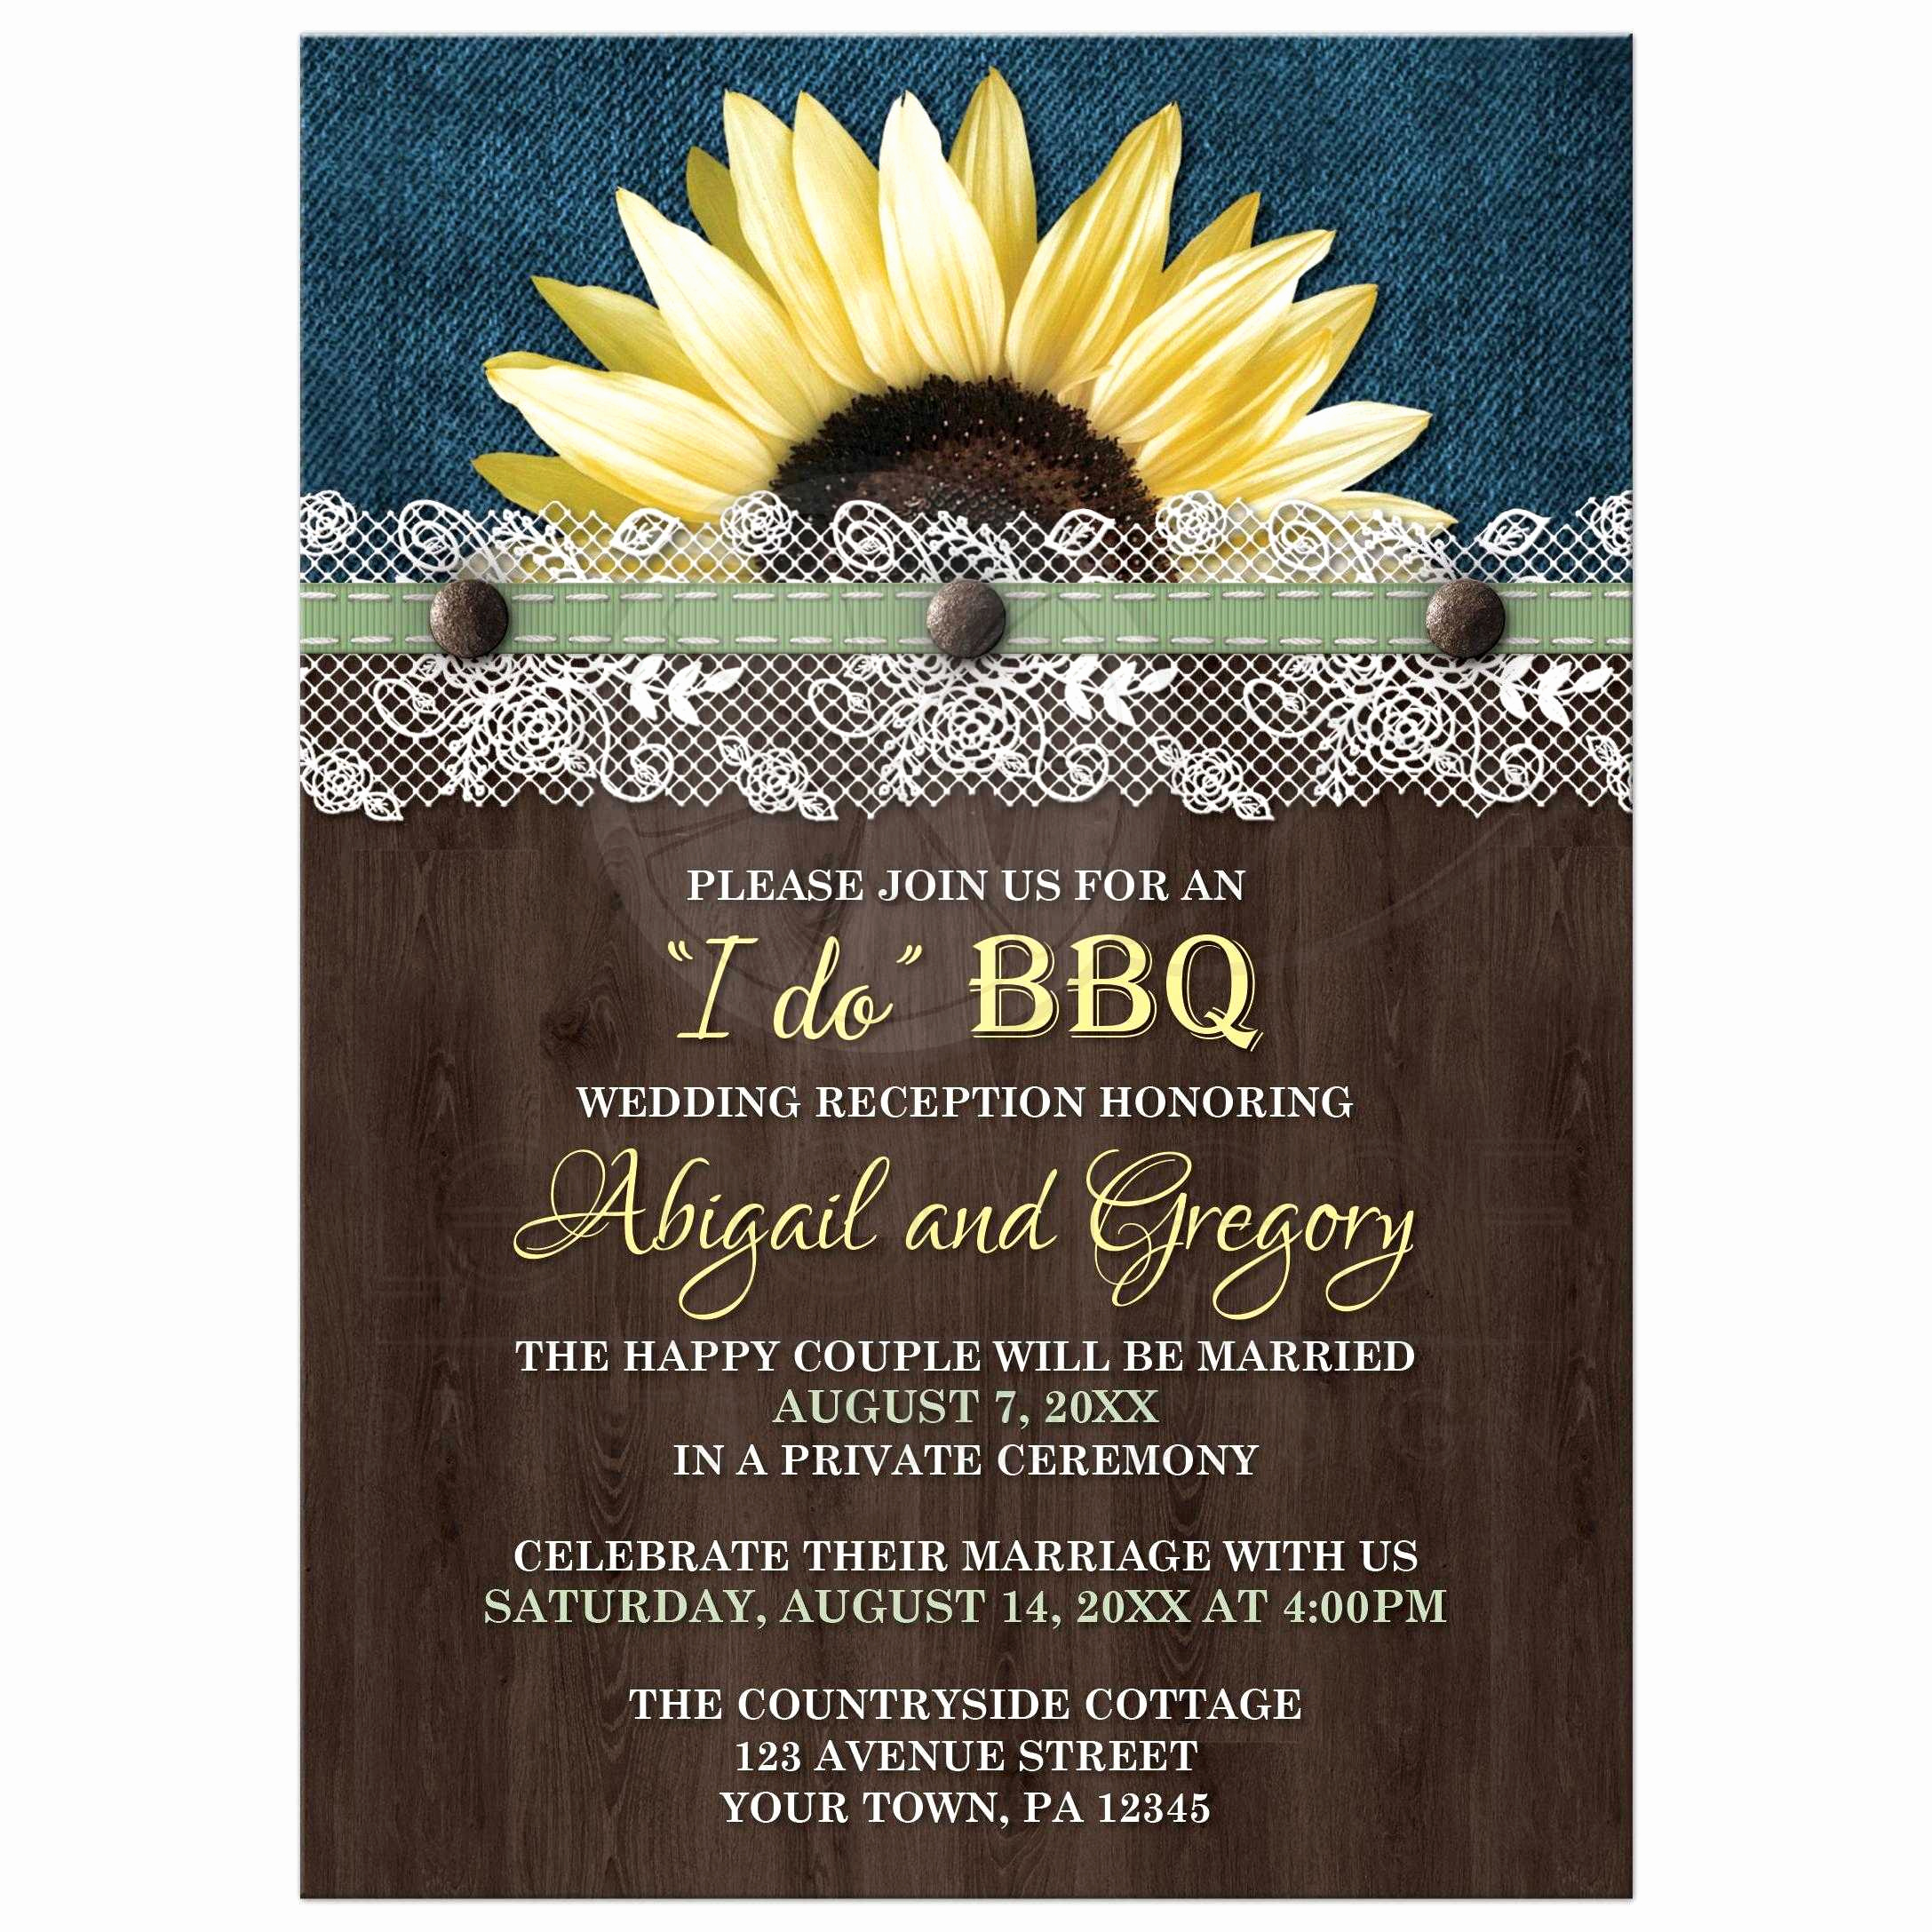 Private Wedding Ceremony Invitation Beautiful Reception Ly Invitations Sunflower Denim Wood Lace I